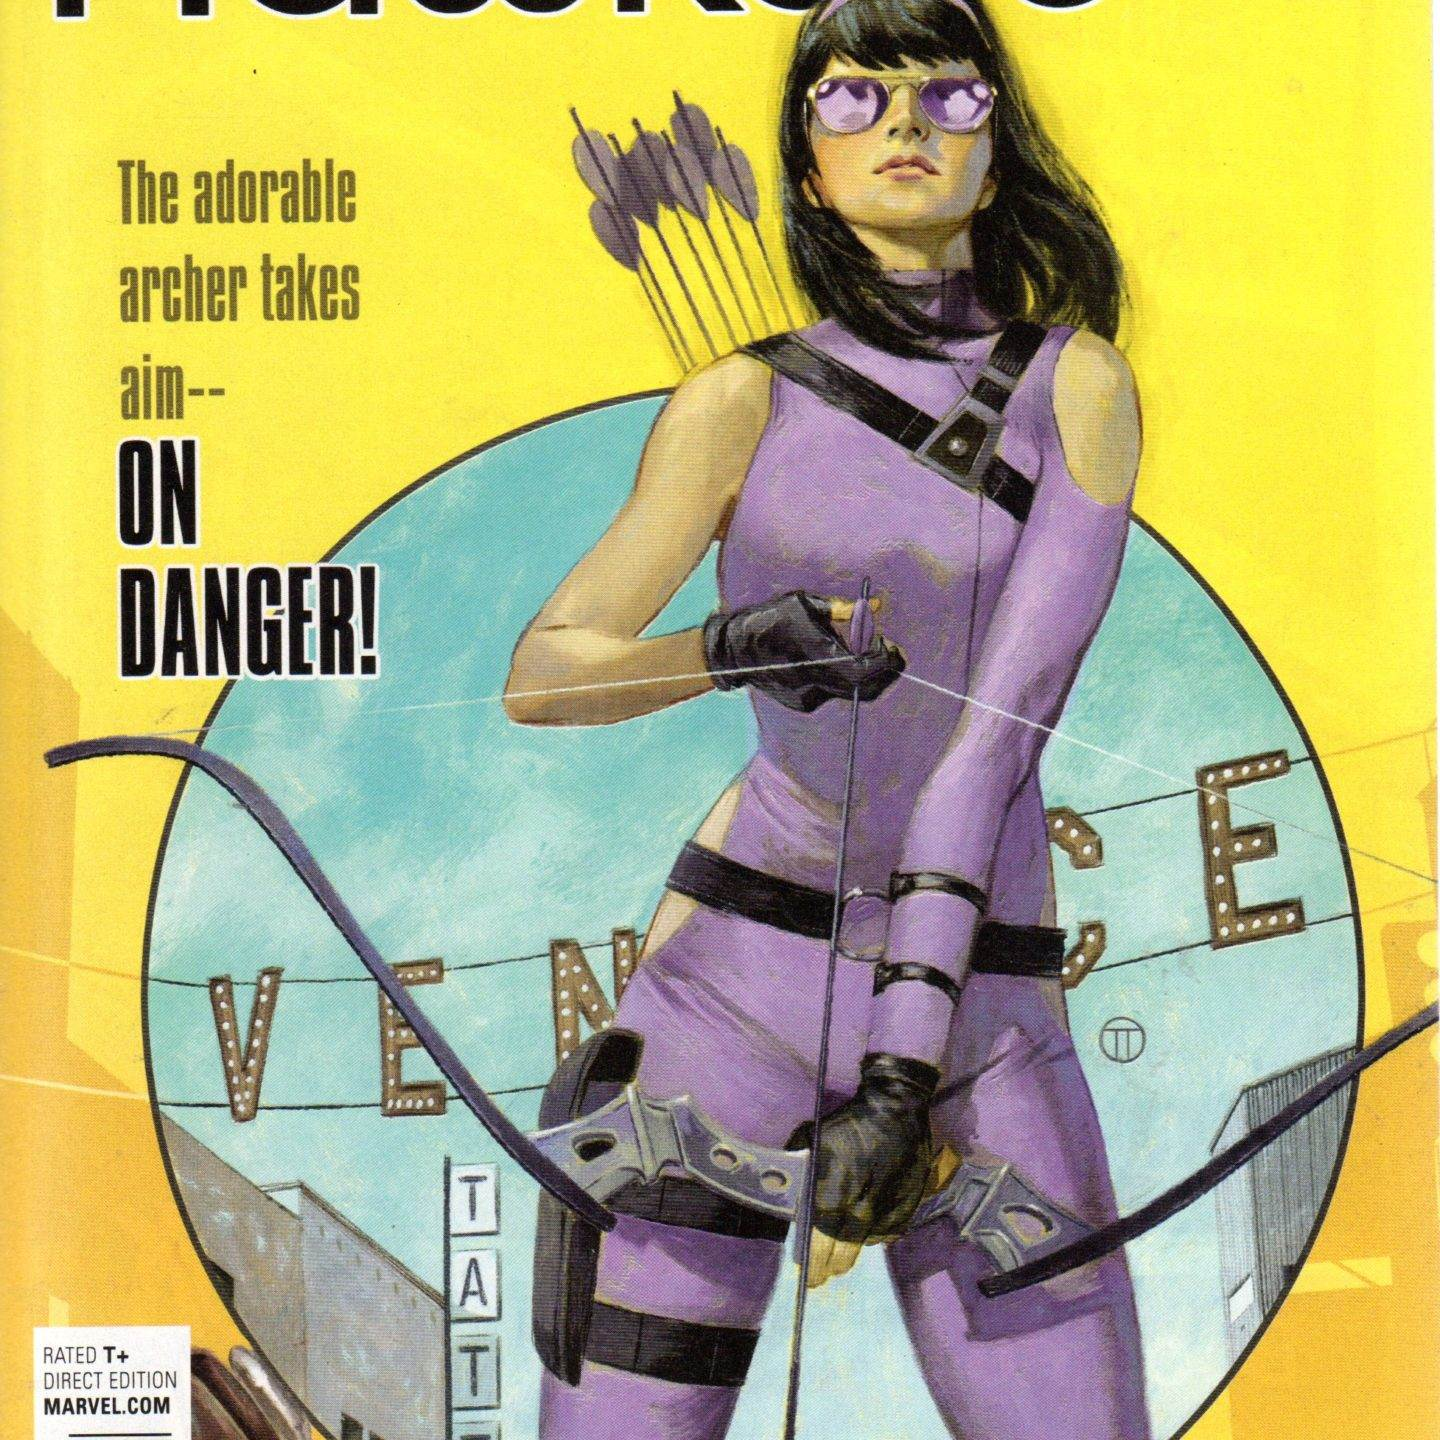 'Hawkeye' #1 – The 'adorable archer' we need in this time of crisis!